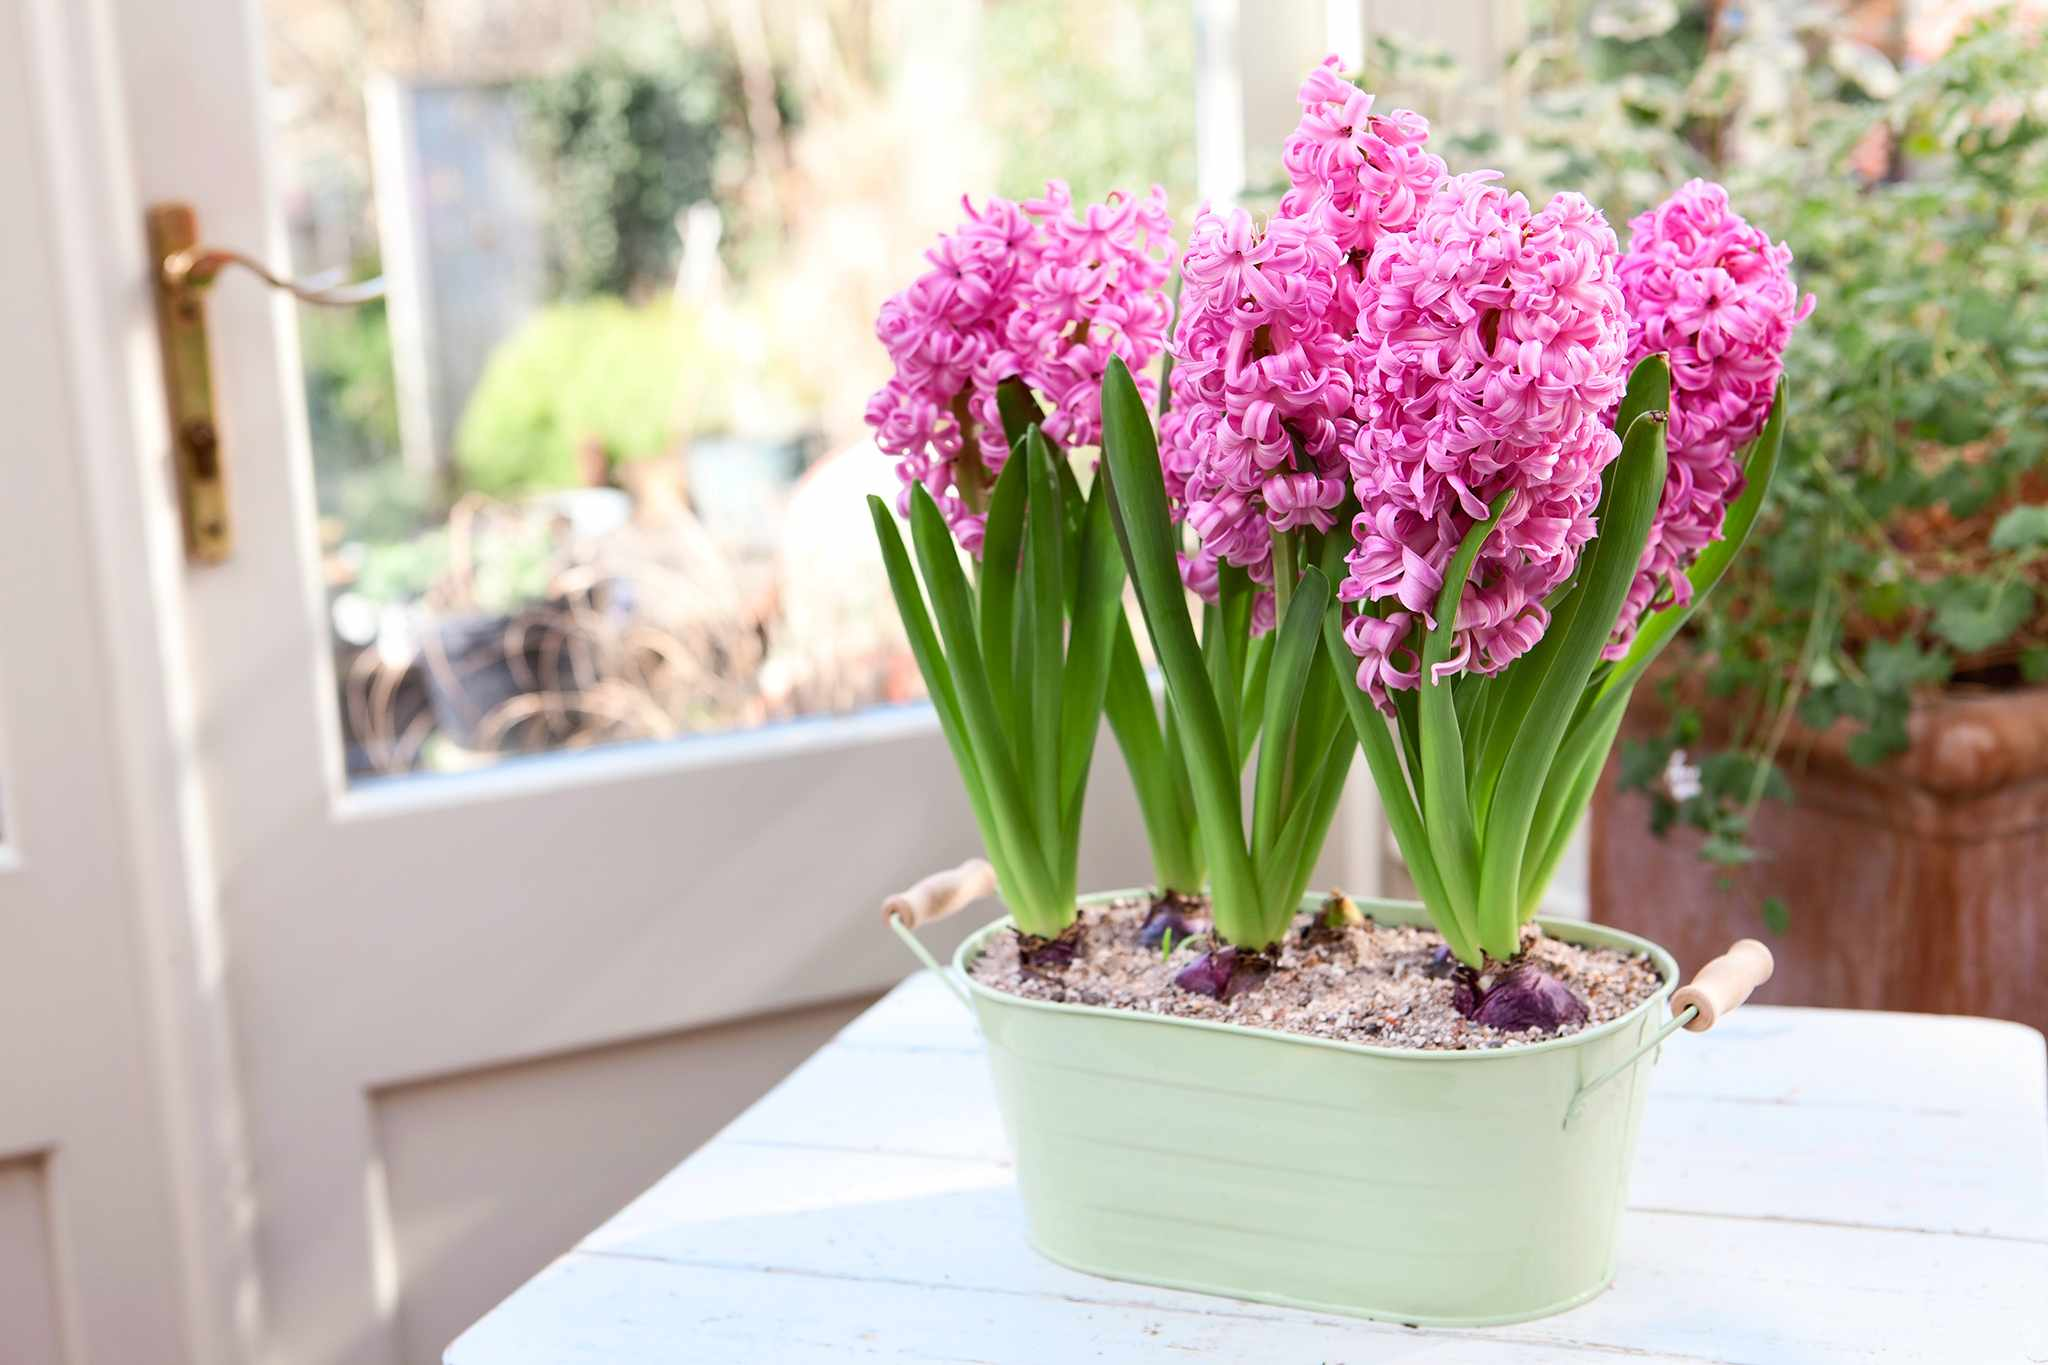 How to grow hyacinths - problem solving